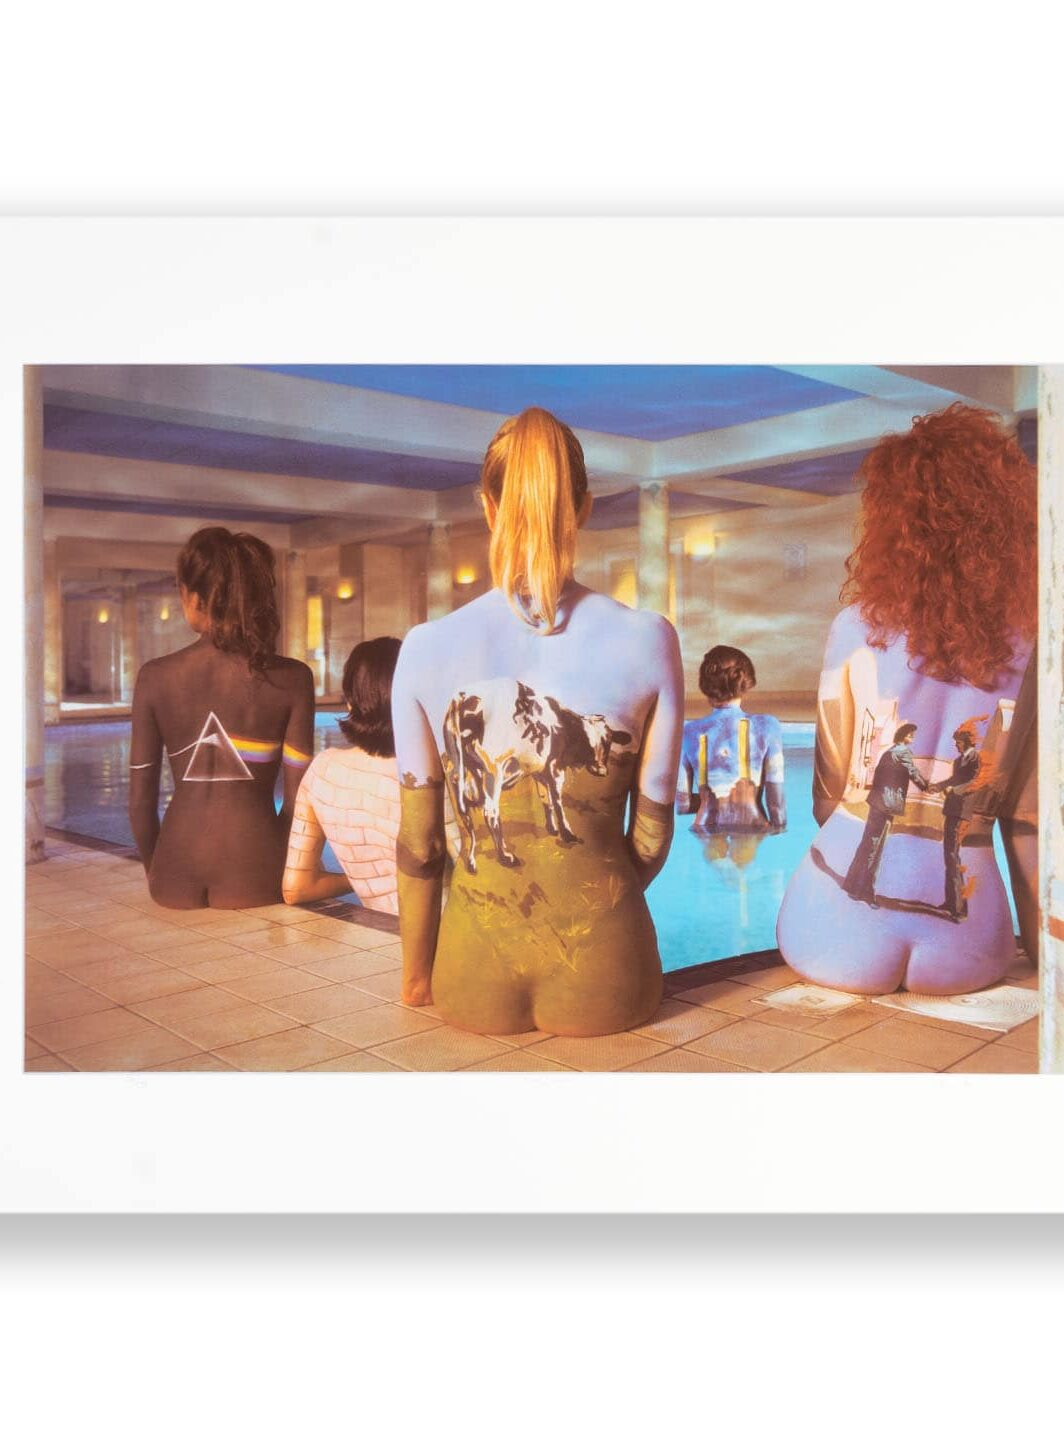 PINK FLOYD BACK 2 BACK PRINT SIGNED BY ARTIST STORM THORGERSON